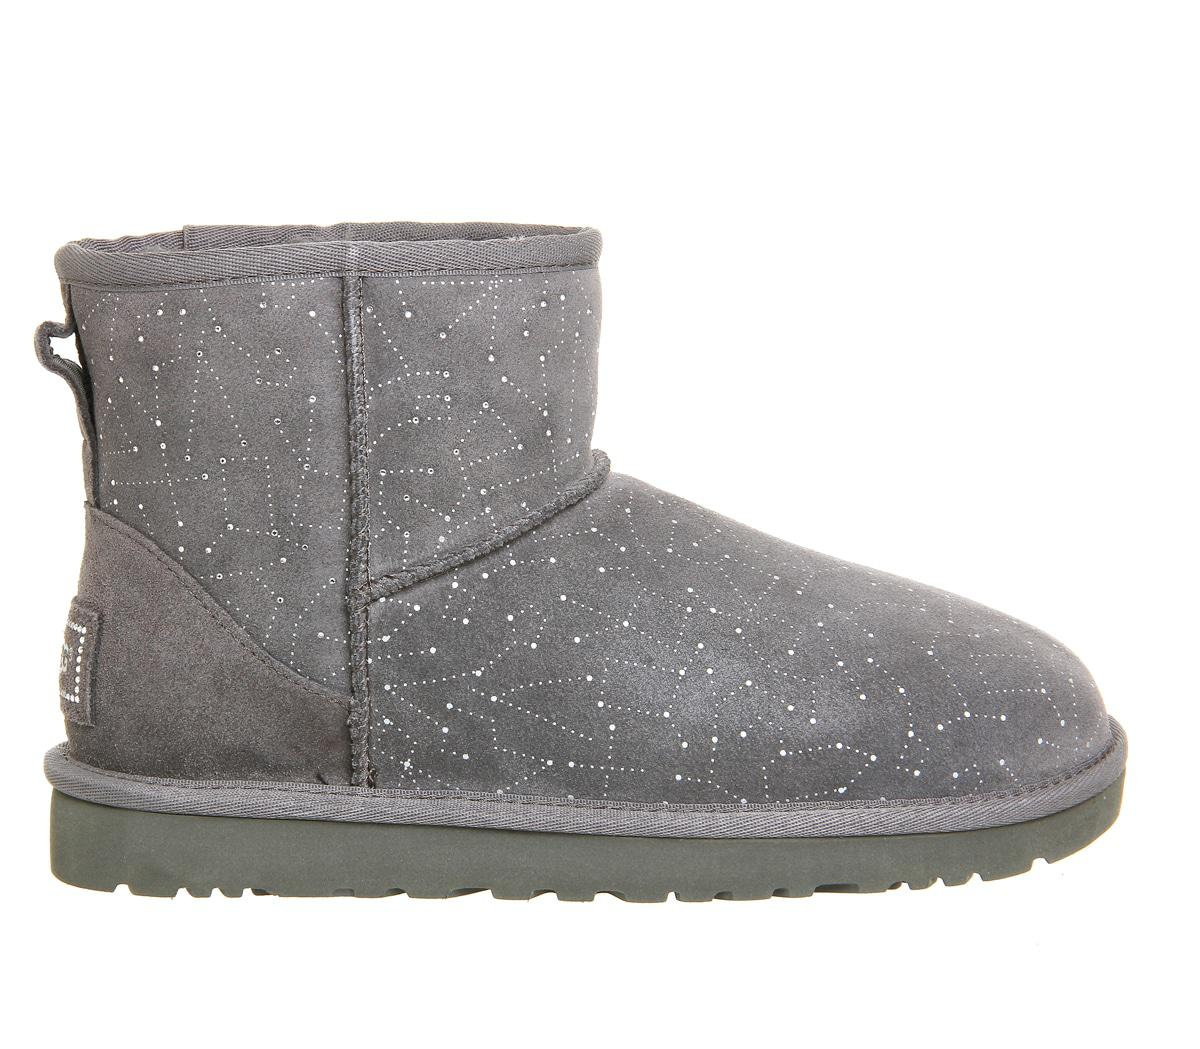 lyst ugg classic mini constellation boots in gray. Black Bedroom Furniture Sets. Home Design Ideas